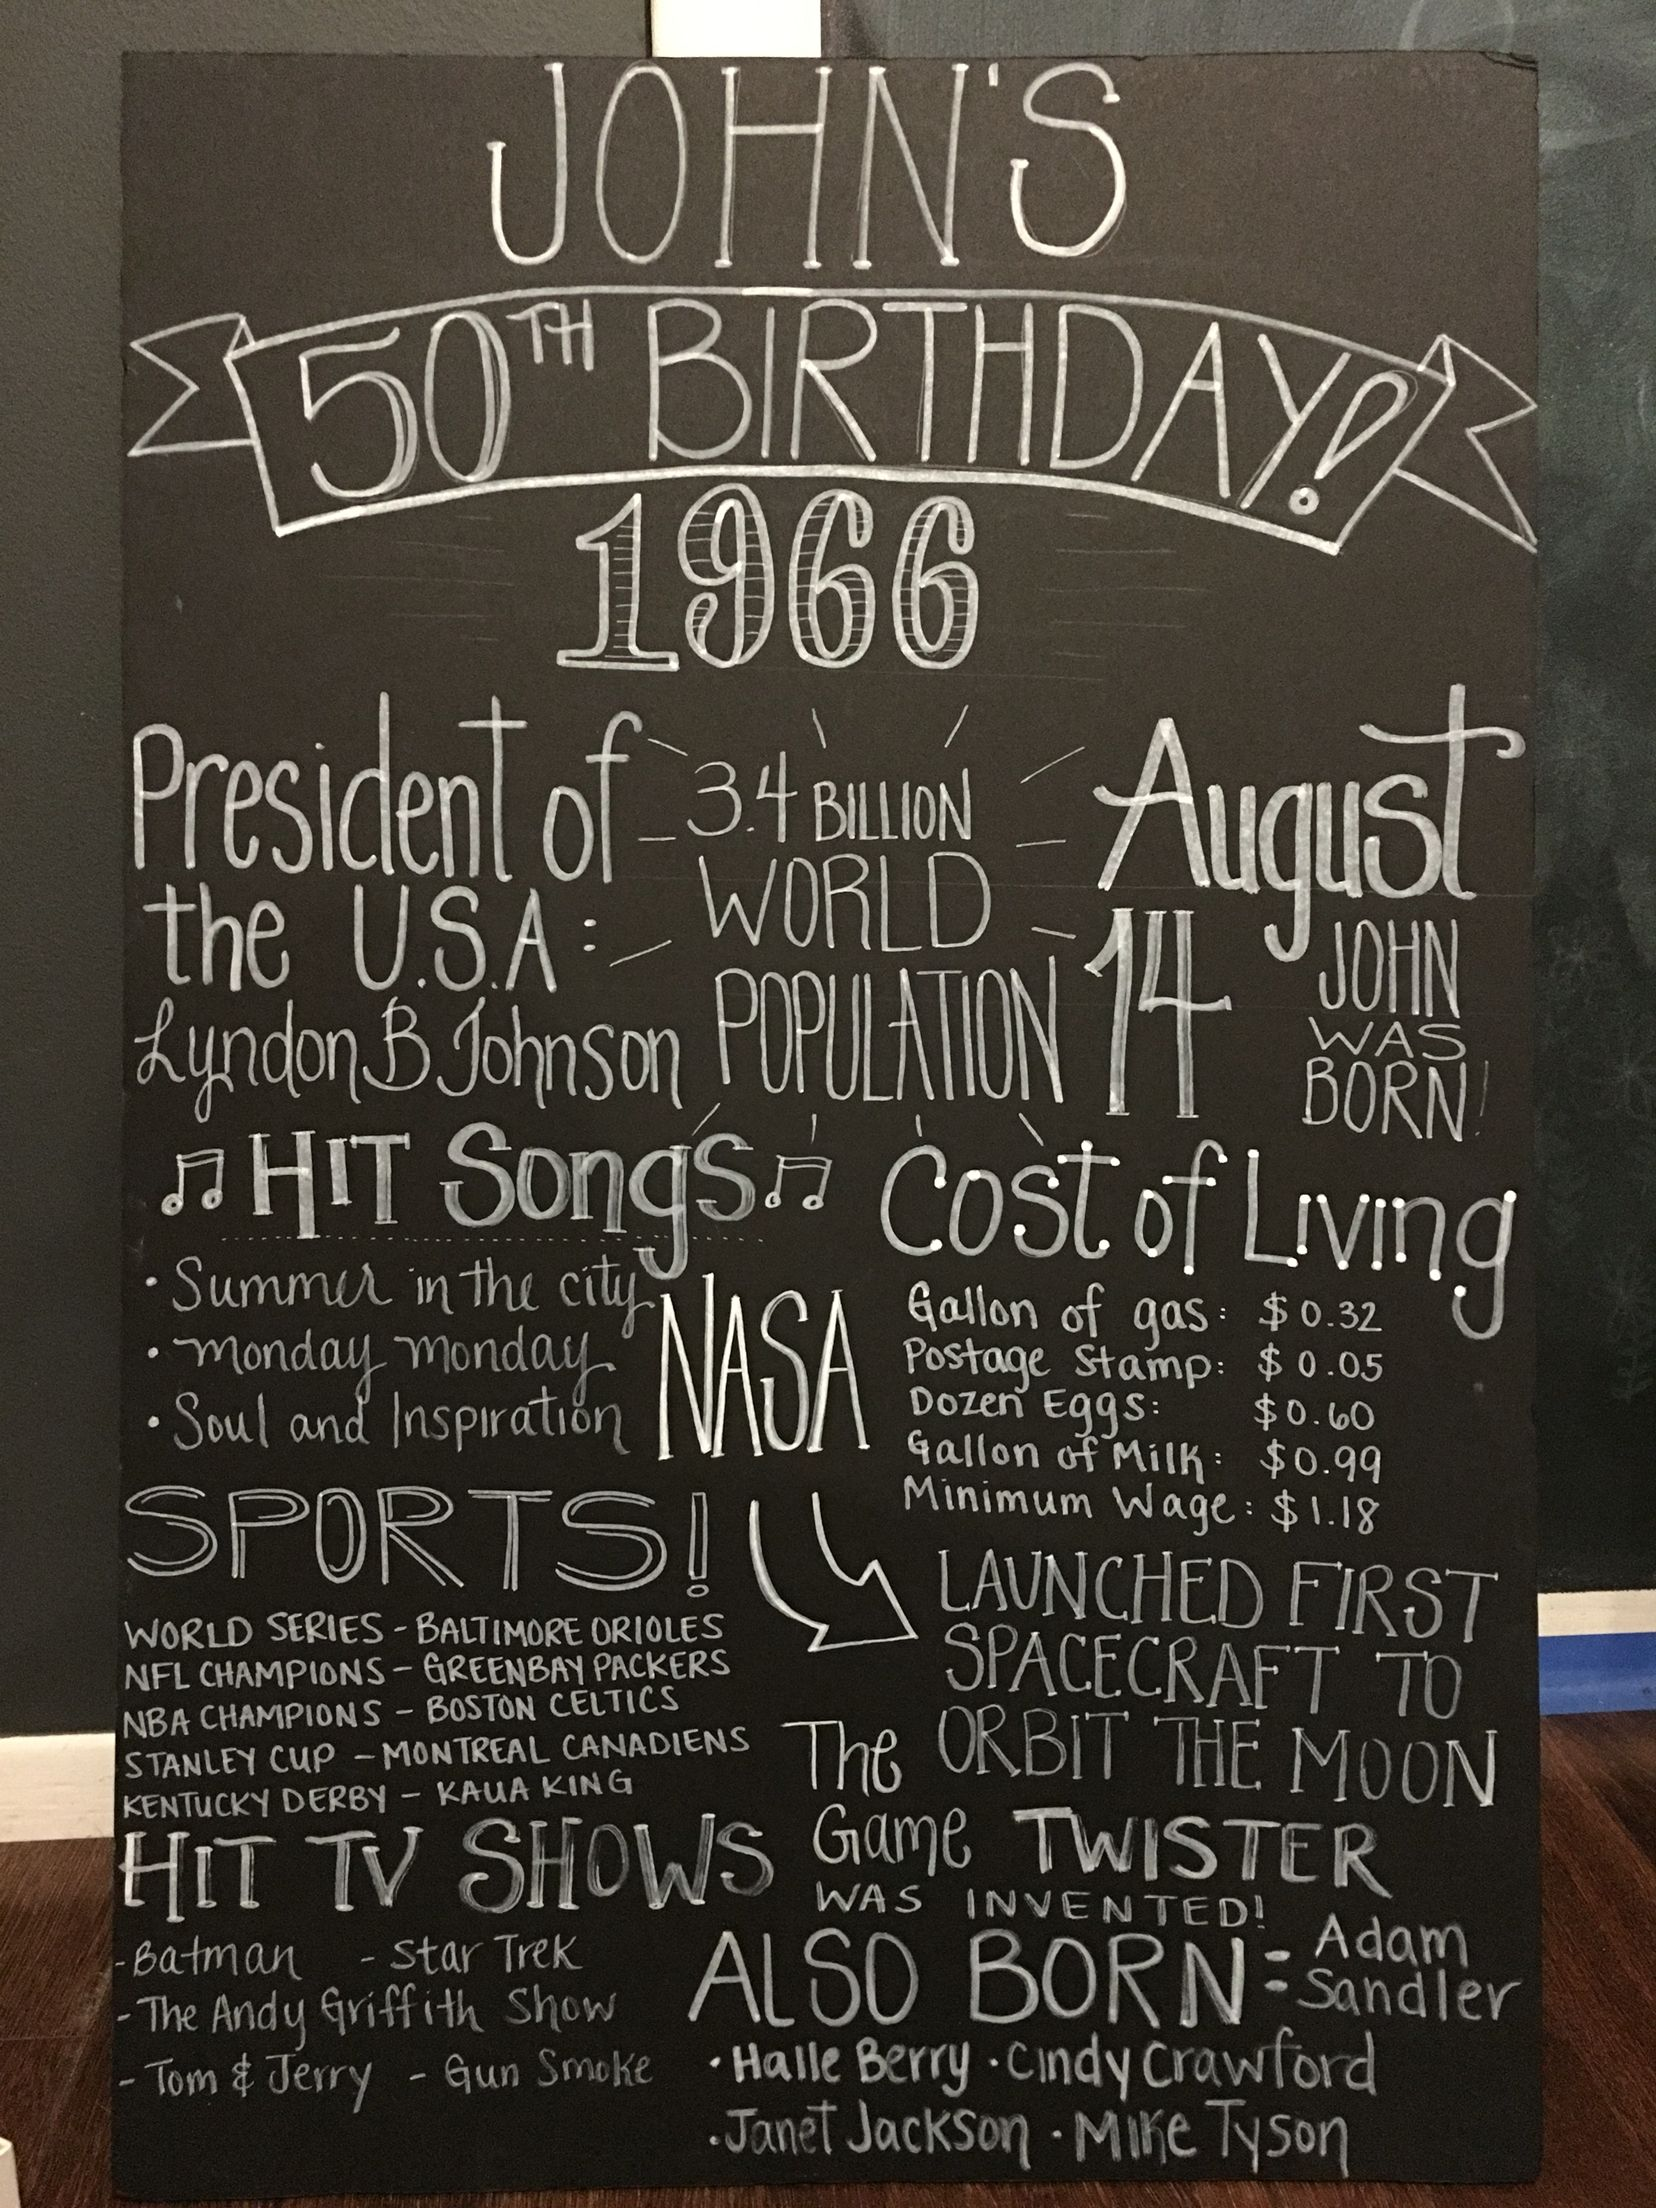 50th Birthday Events And Facts During 1966 With Images 50th